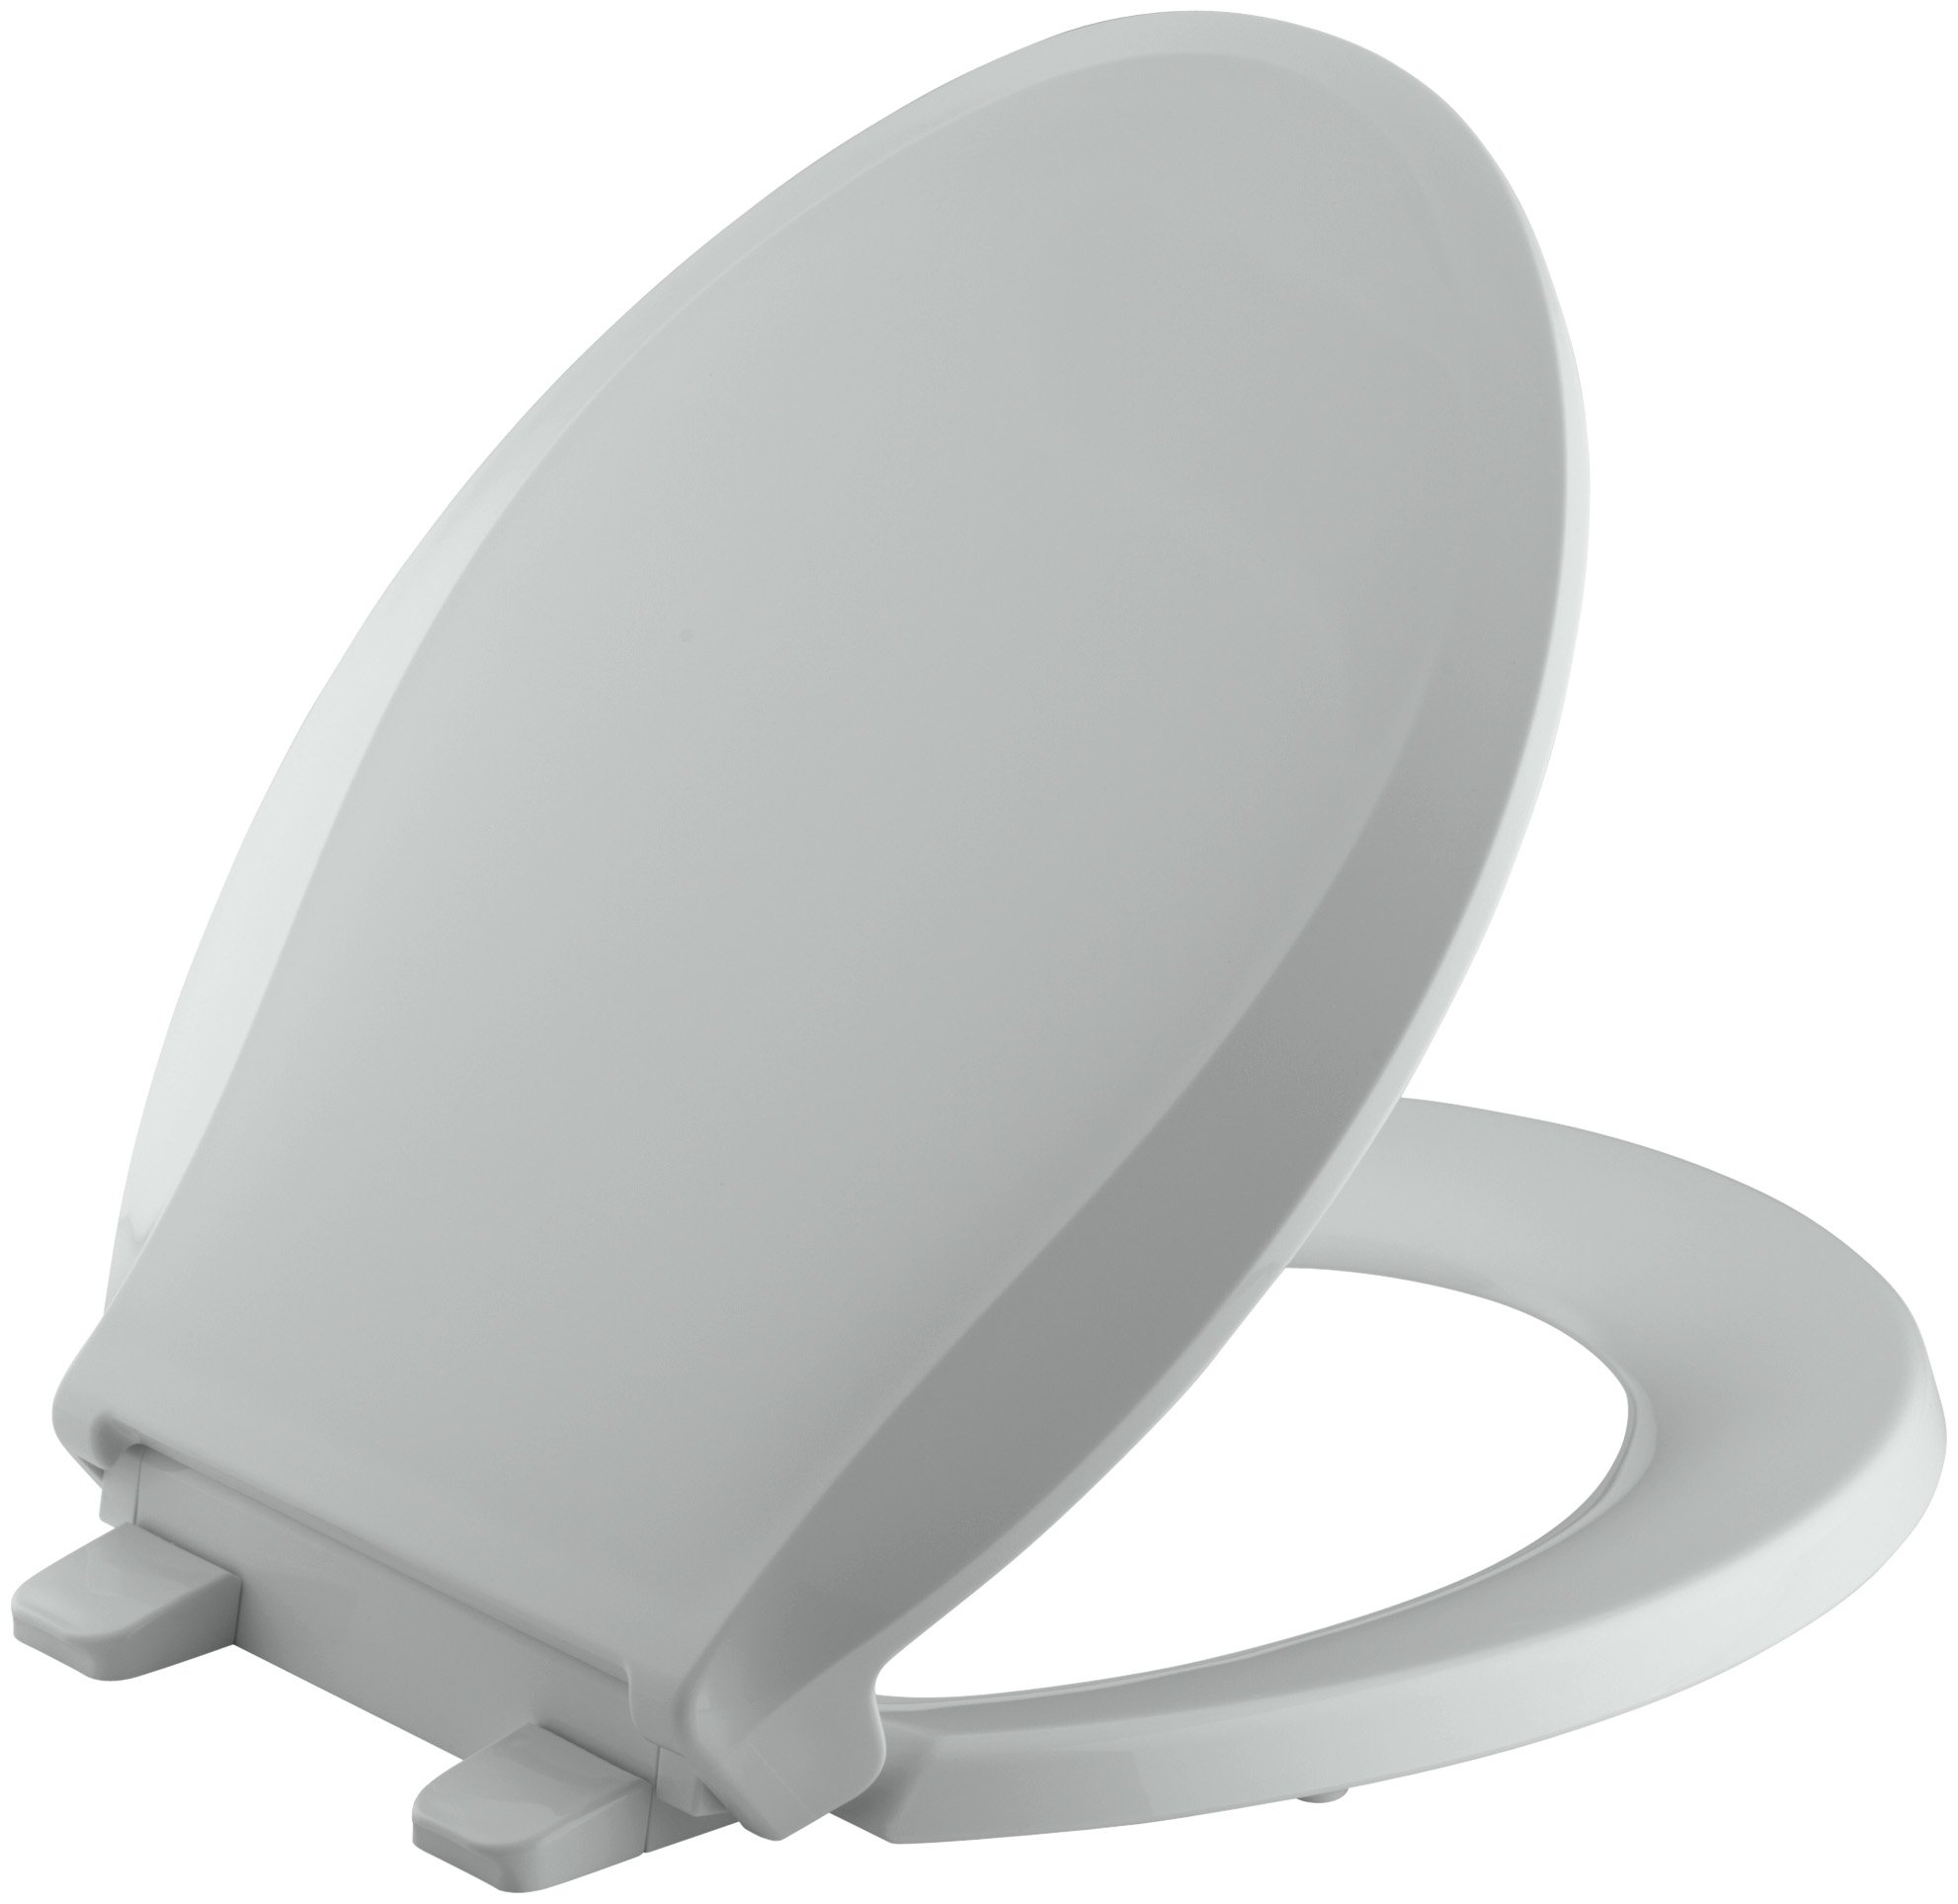 KOHLER K-4639-95 Cachet Quiet-Close with Grip-Tight Bumpers Round-front Toilet Seat, Ice Grey